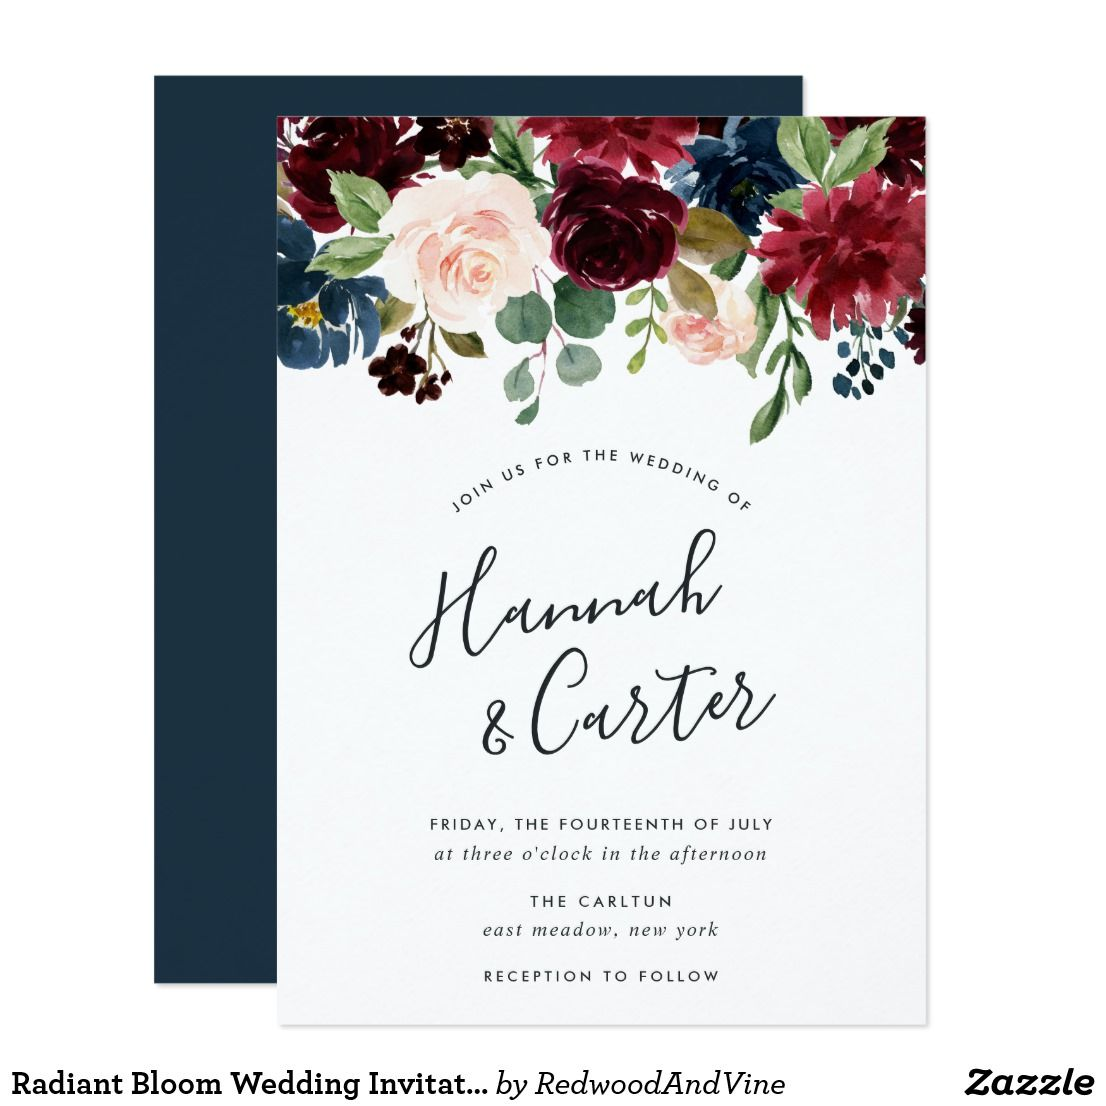 Radiant Bloom Wedding Invitation Invites Wedding Wedding And